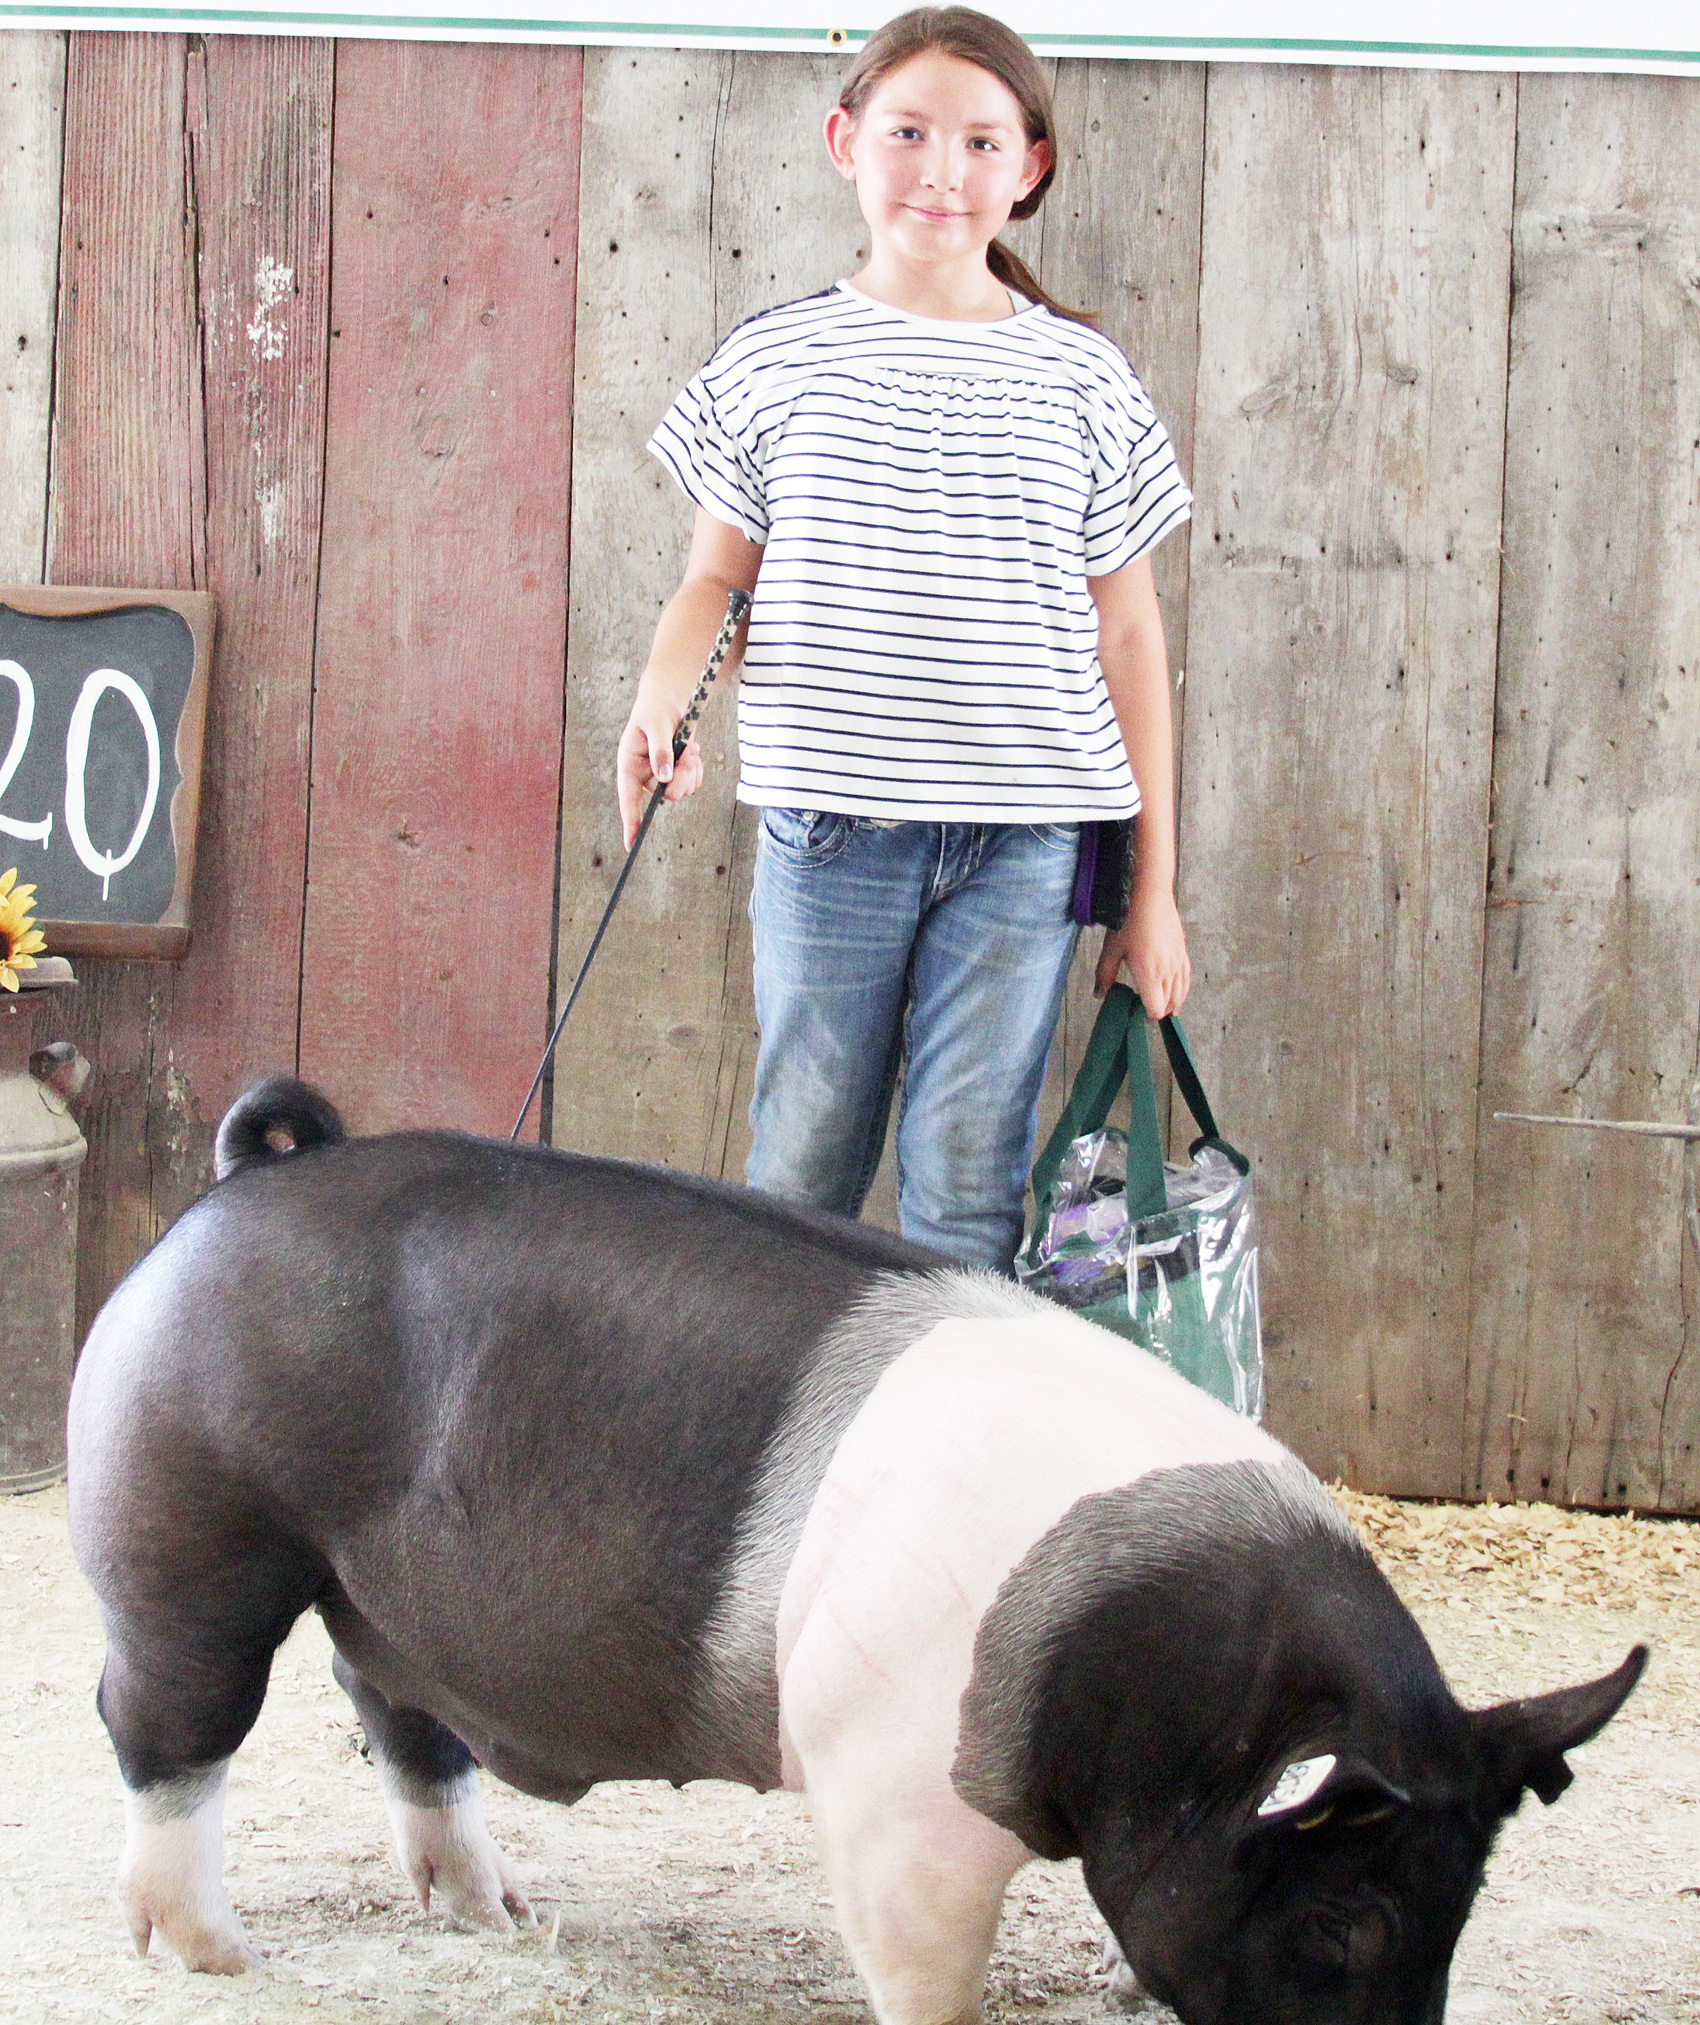 Harper Mitchell of the Mayetta Mustangs 4-H Club showed the Champion Hampshire market hog at the 2020 Jackson County Fair.